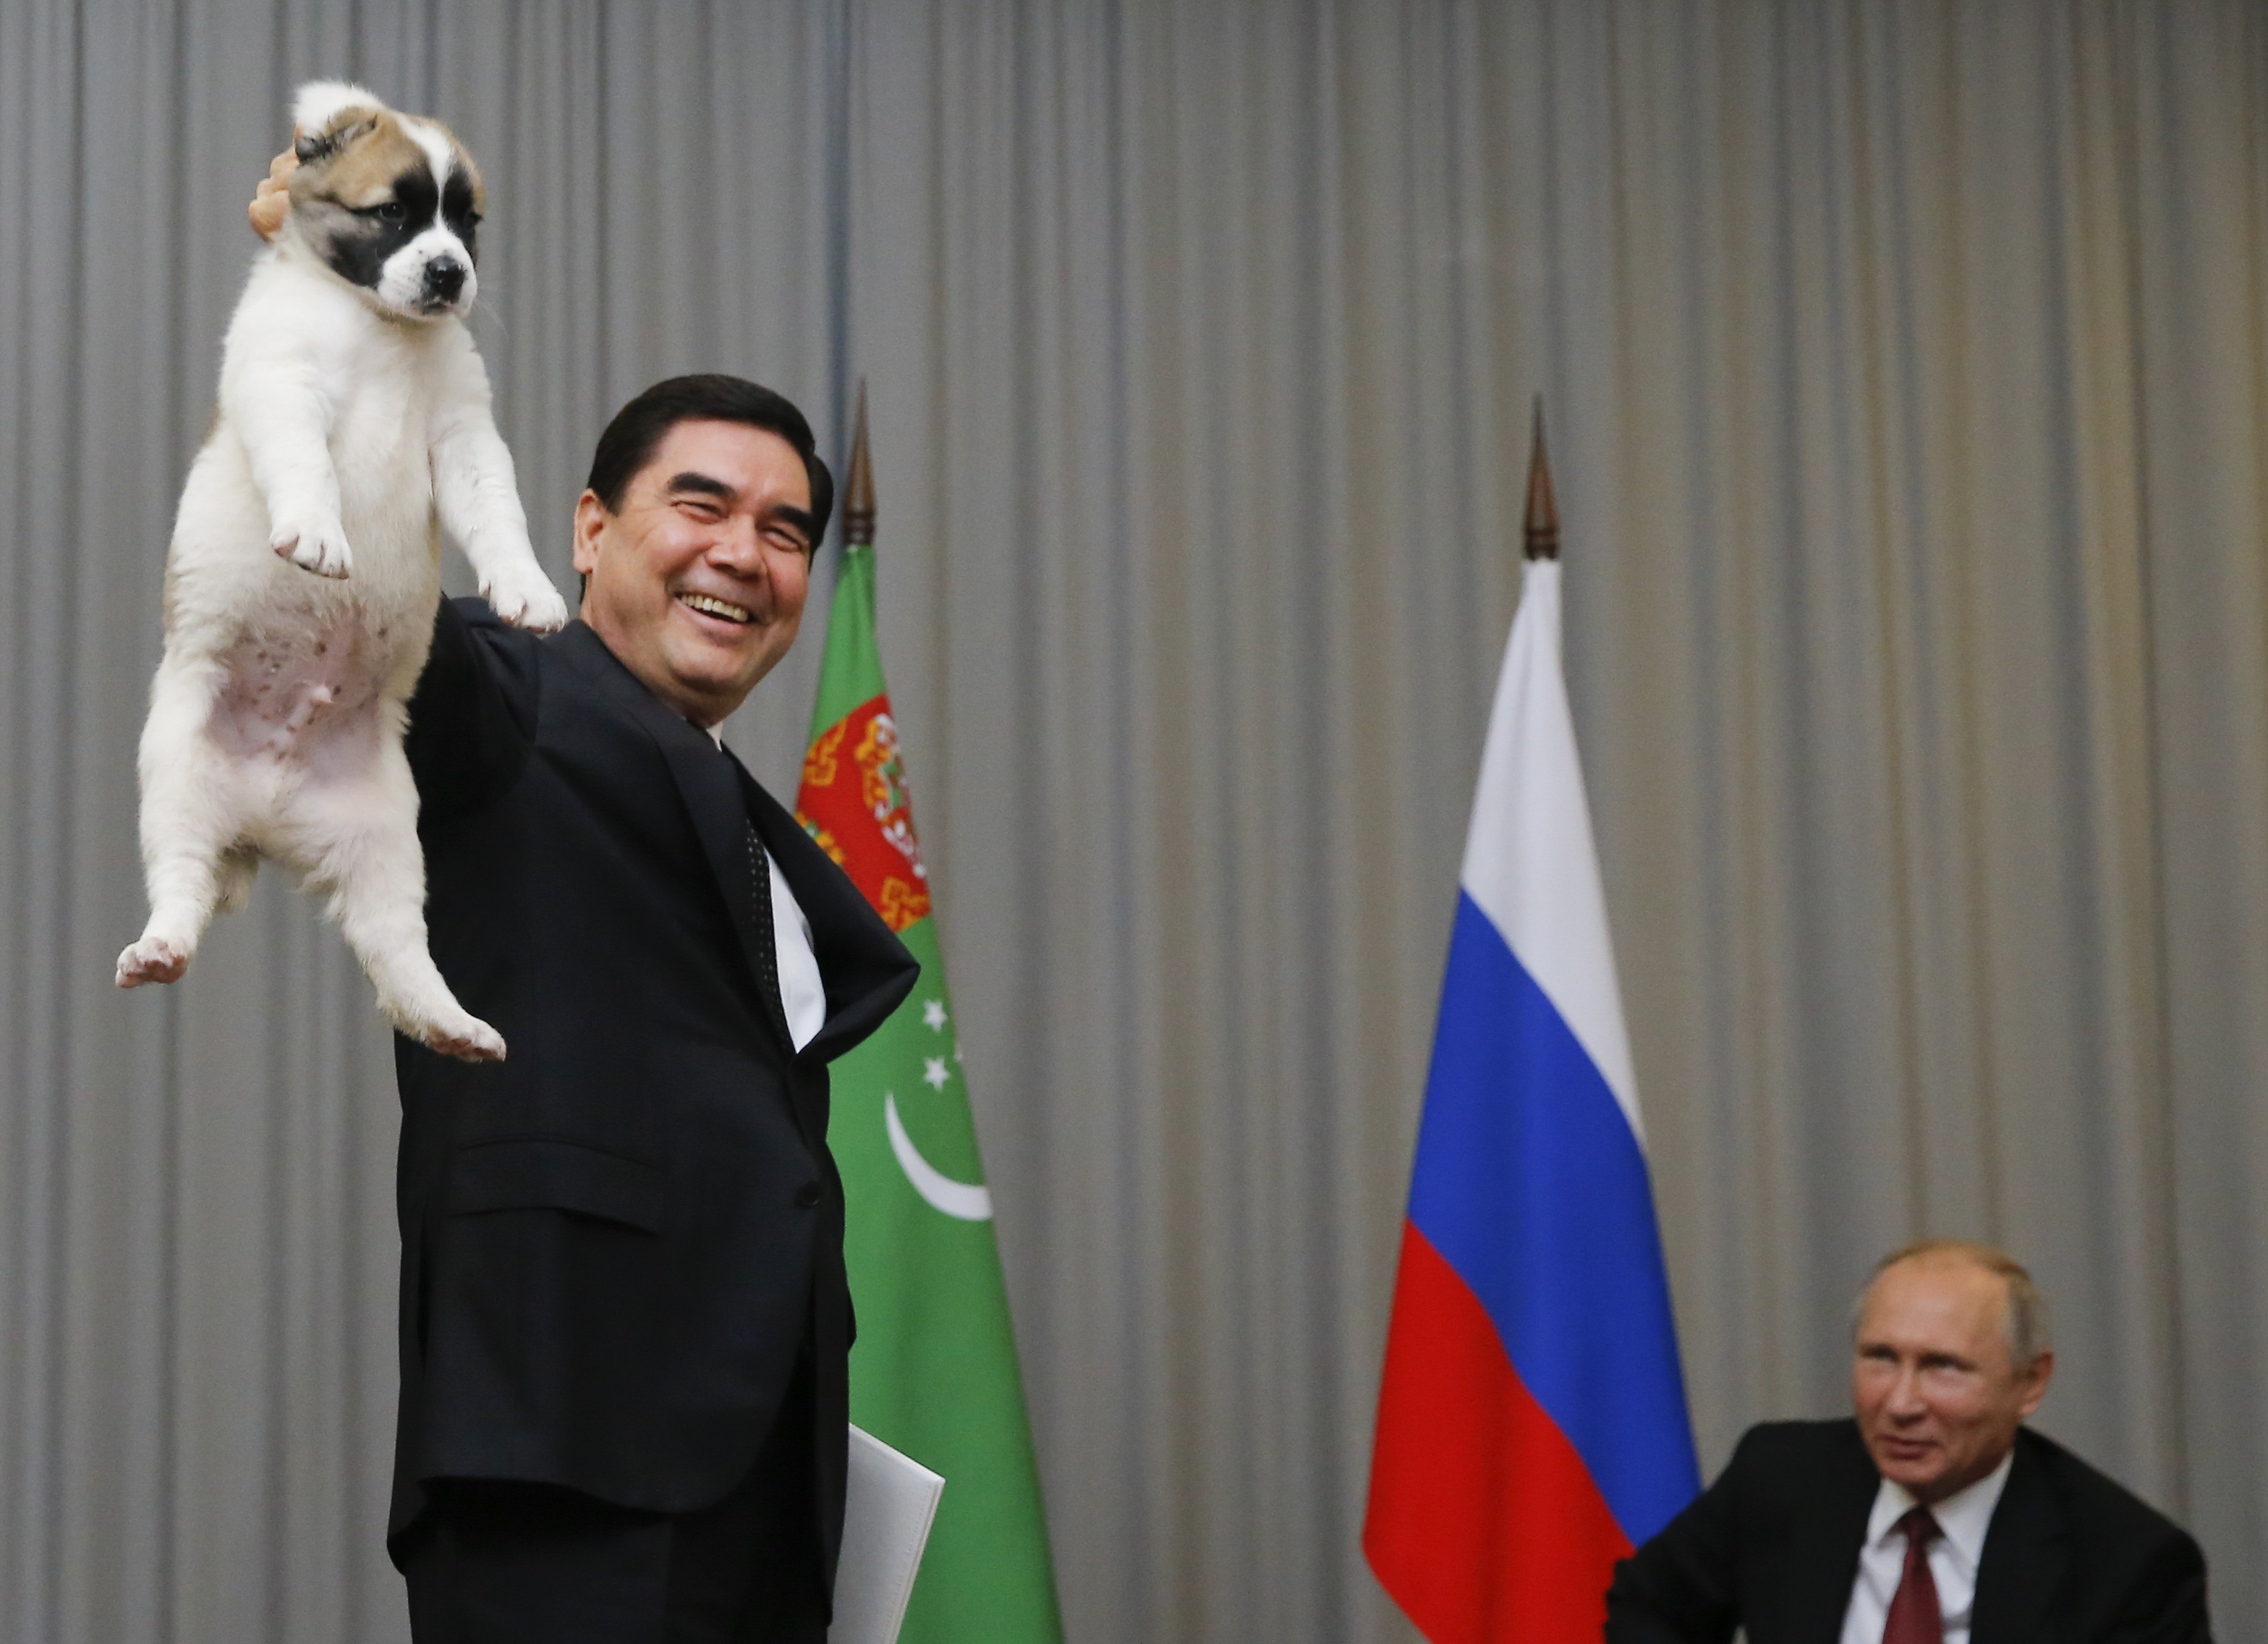 Photos Vladimir Putin Plays With New Puppy And Other Cuddly Pets Fortune